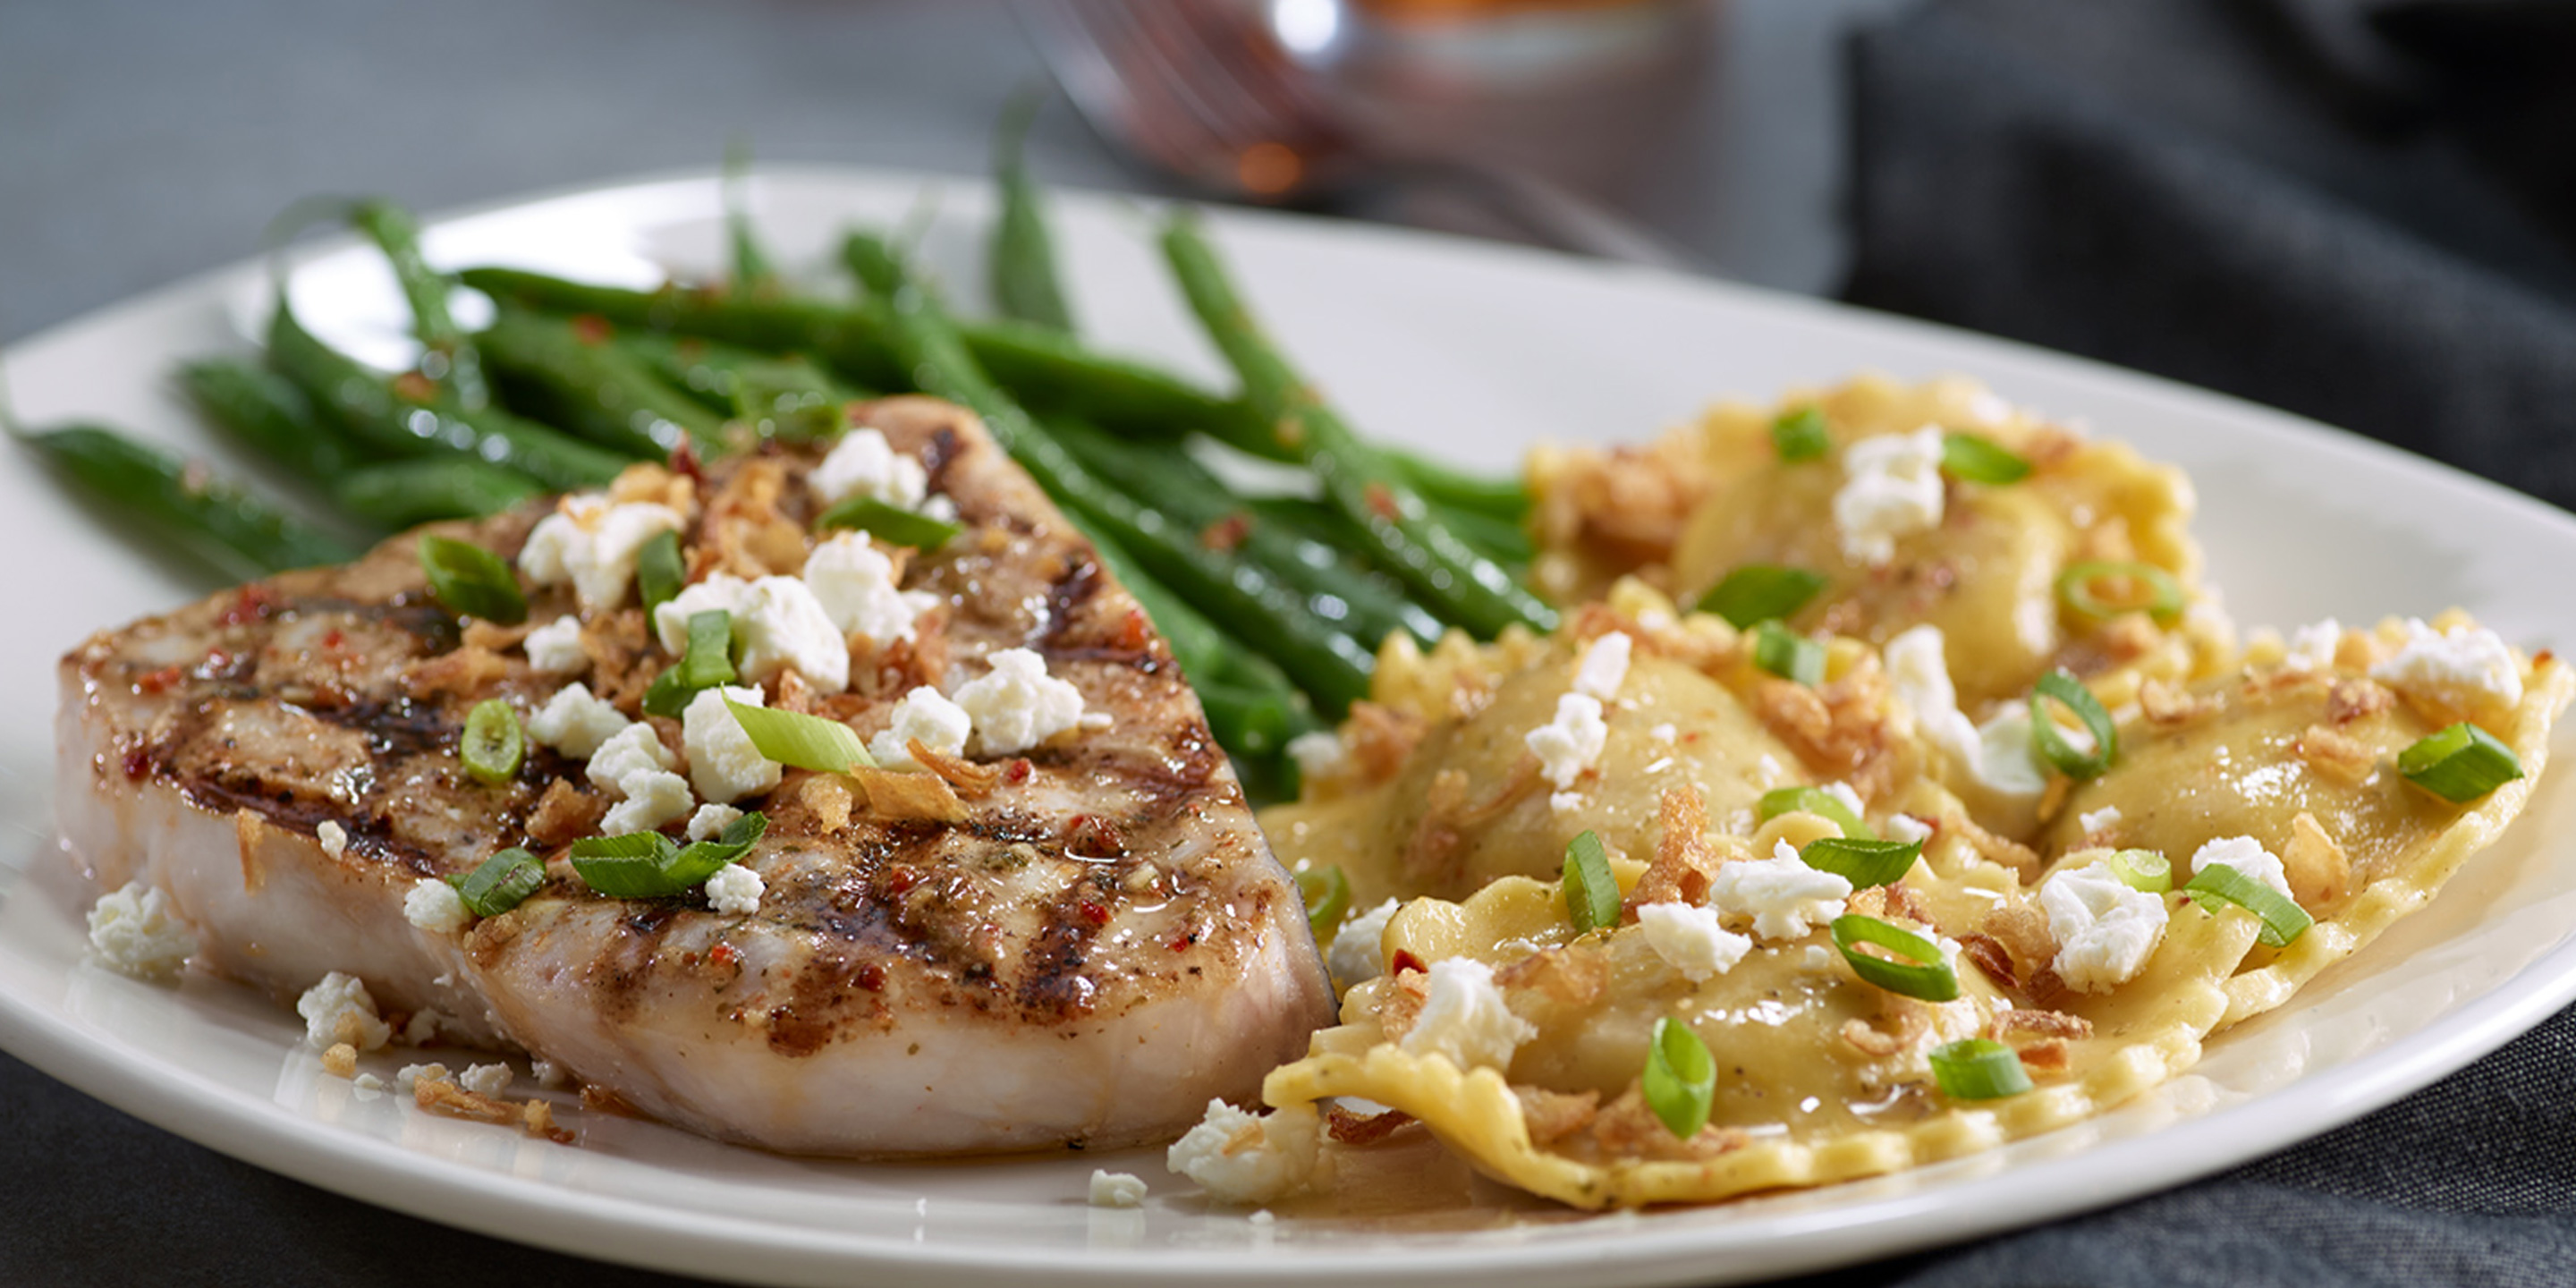 Dine and discover menu at bonefish grill discover finer for Fish bone grill